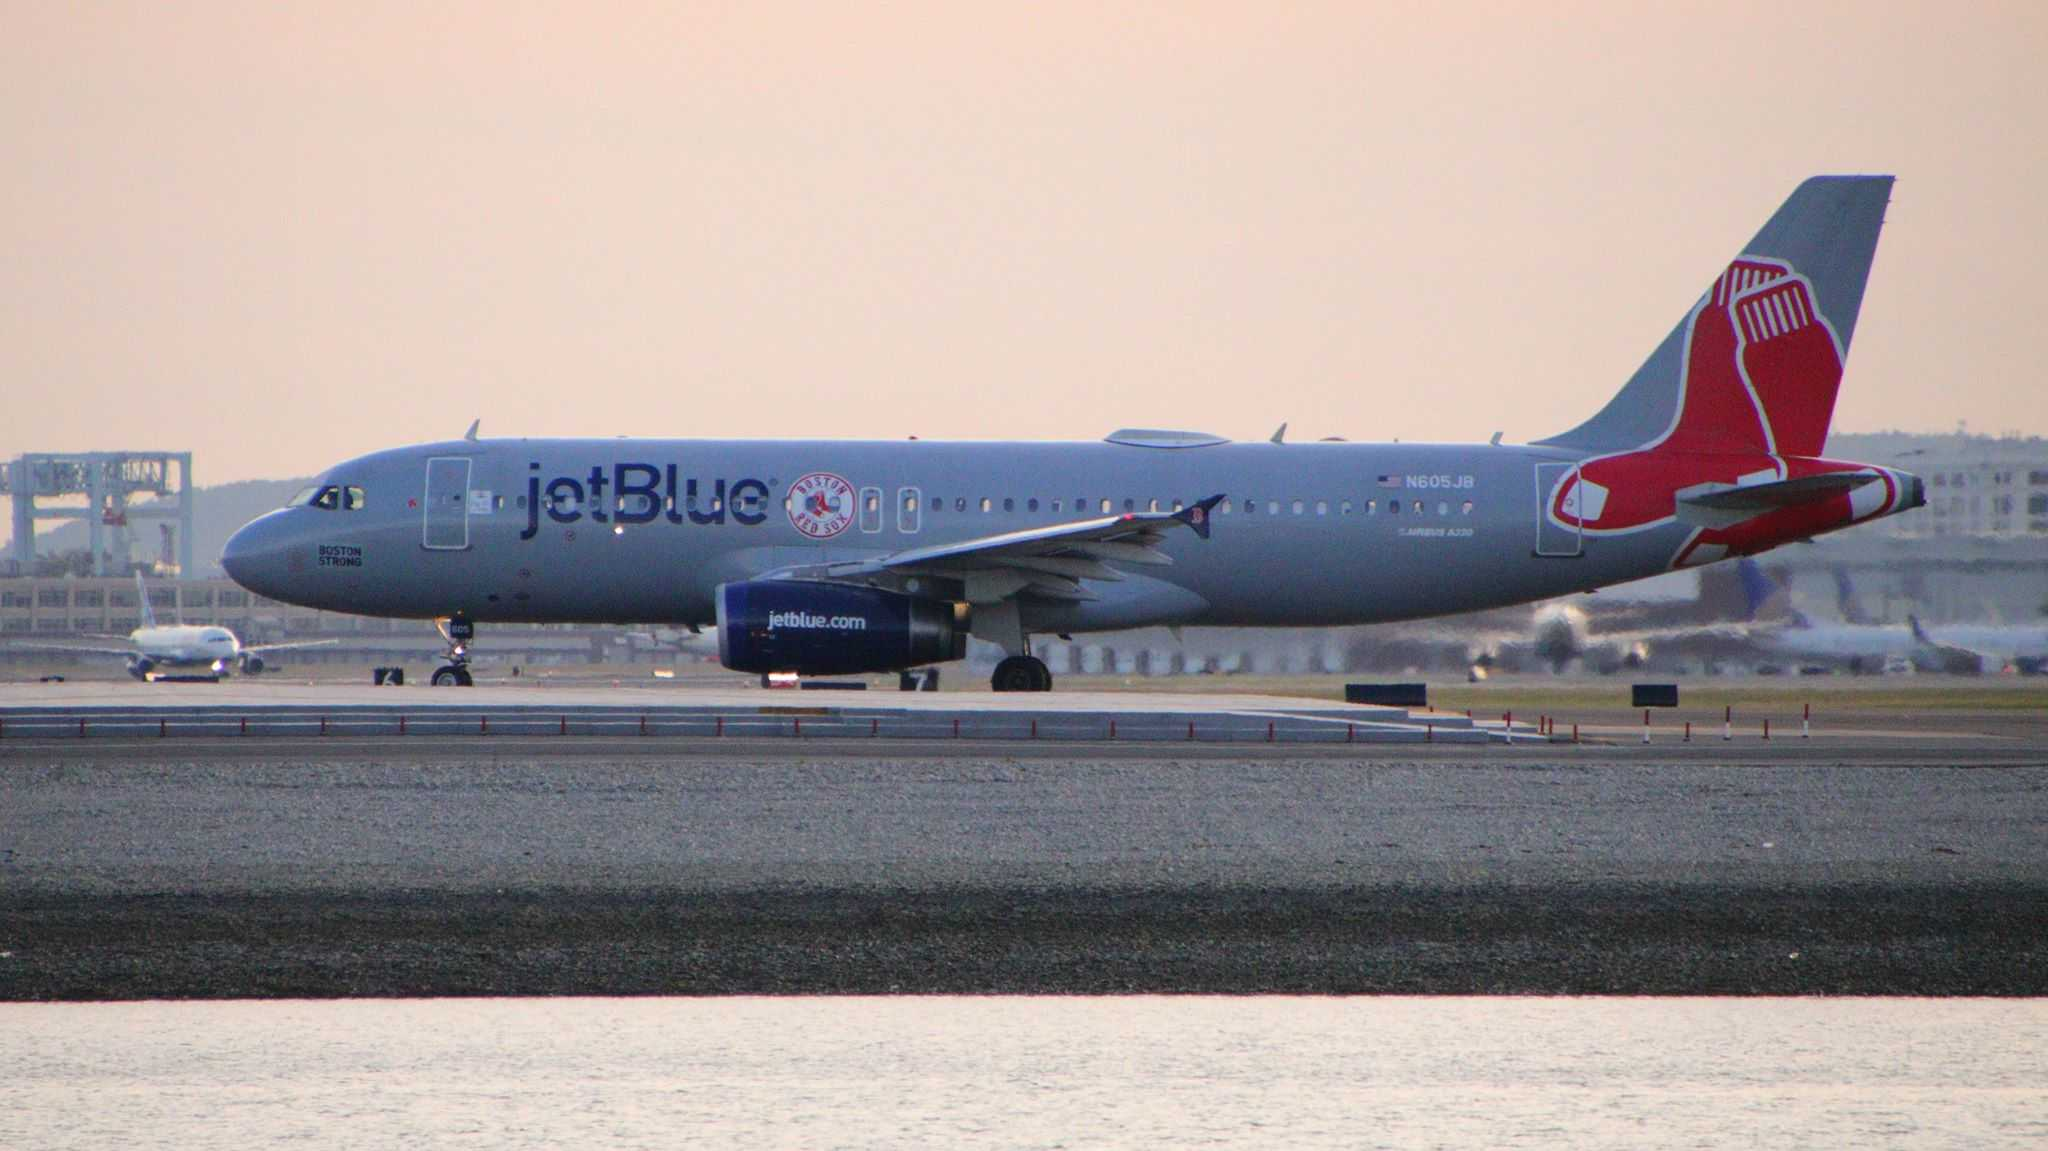 JetBlue Flight From Boston Heads To JFK After Hitting Birds